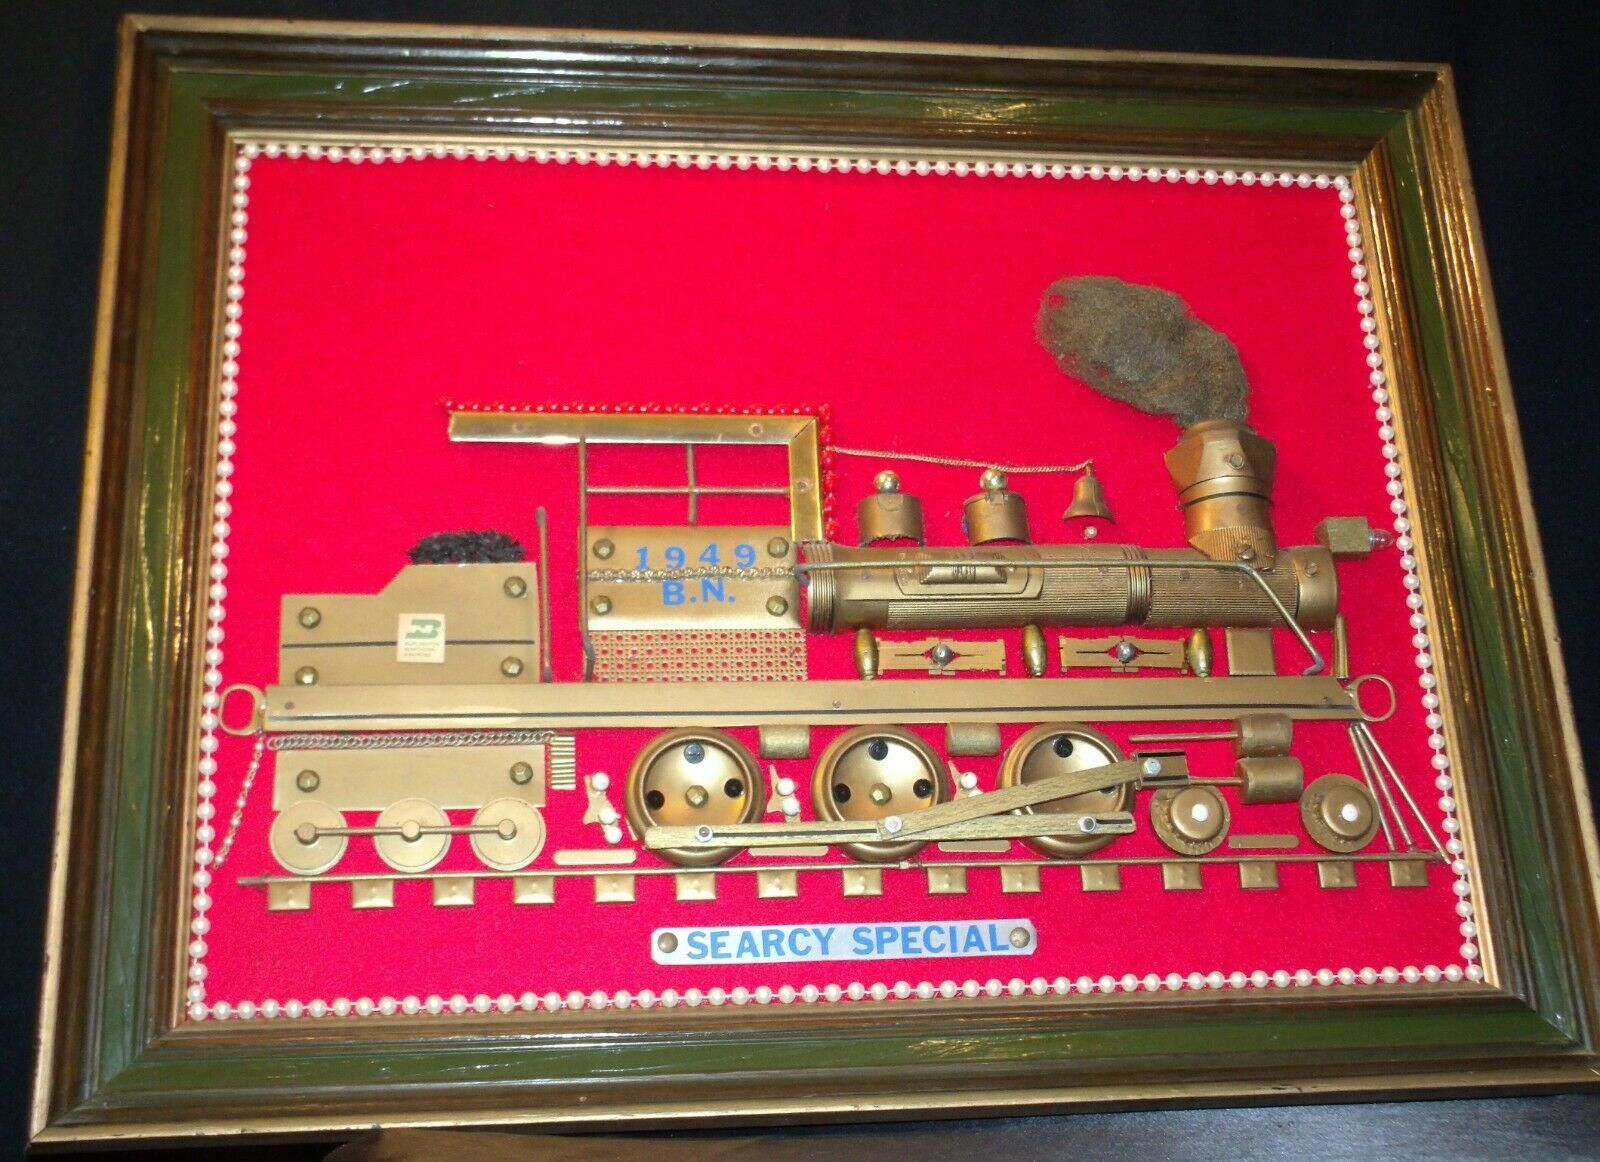 1949 BN Searcy Special Hand made AA-191802 Vintage Collectible